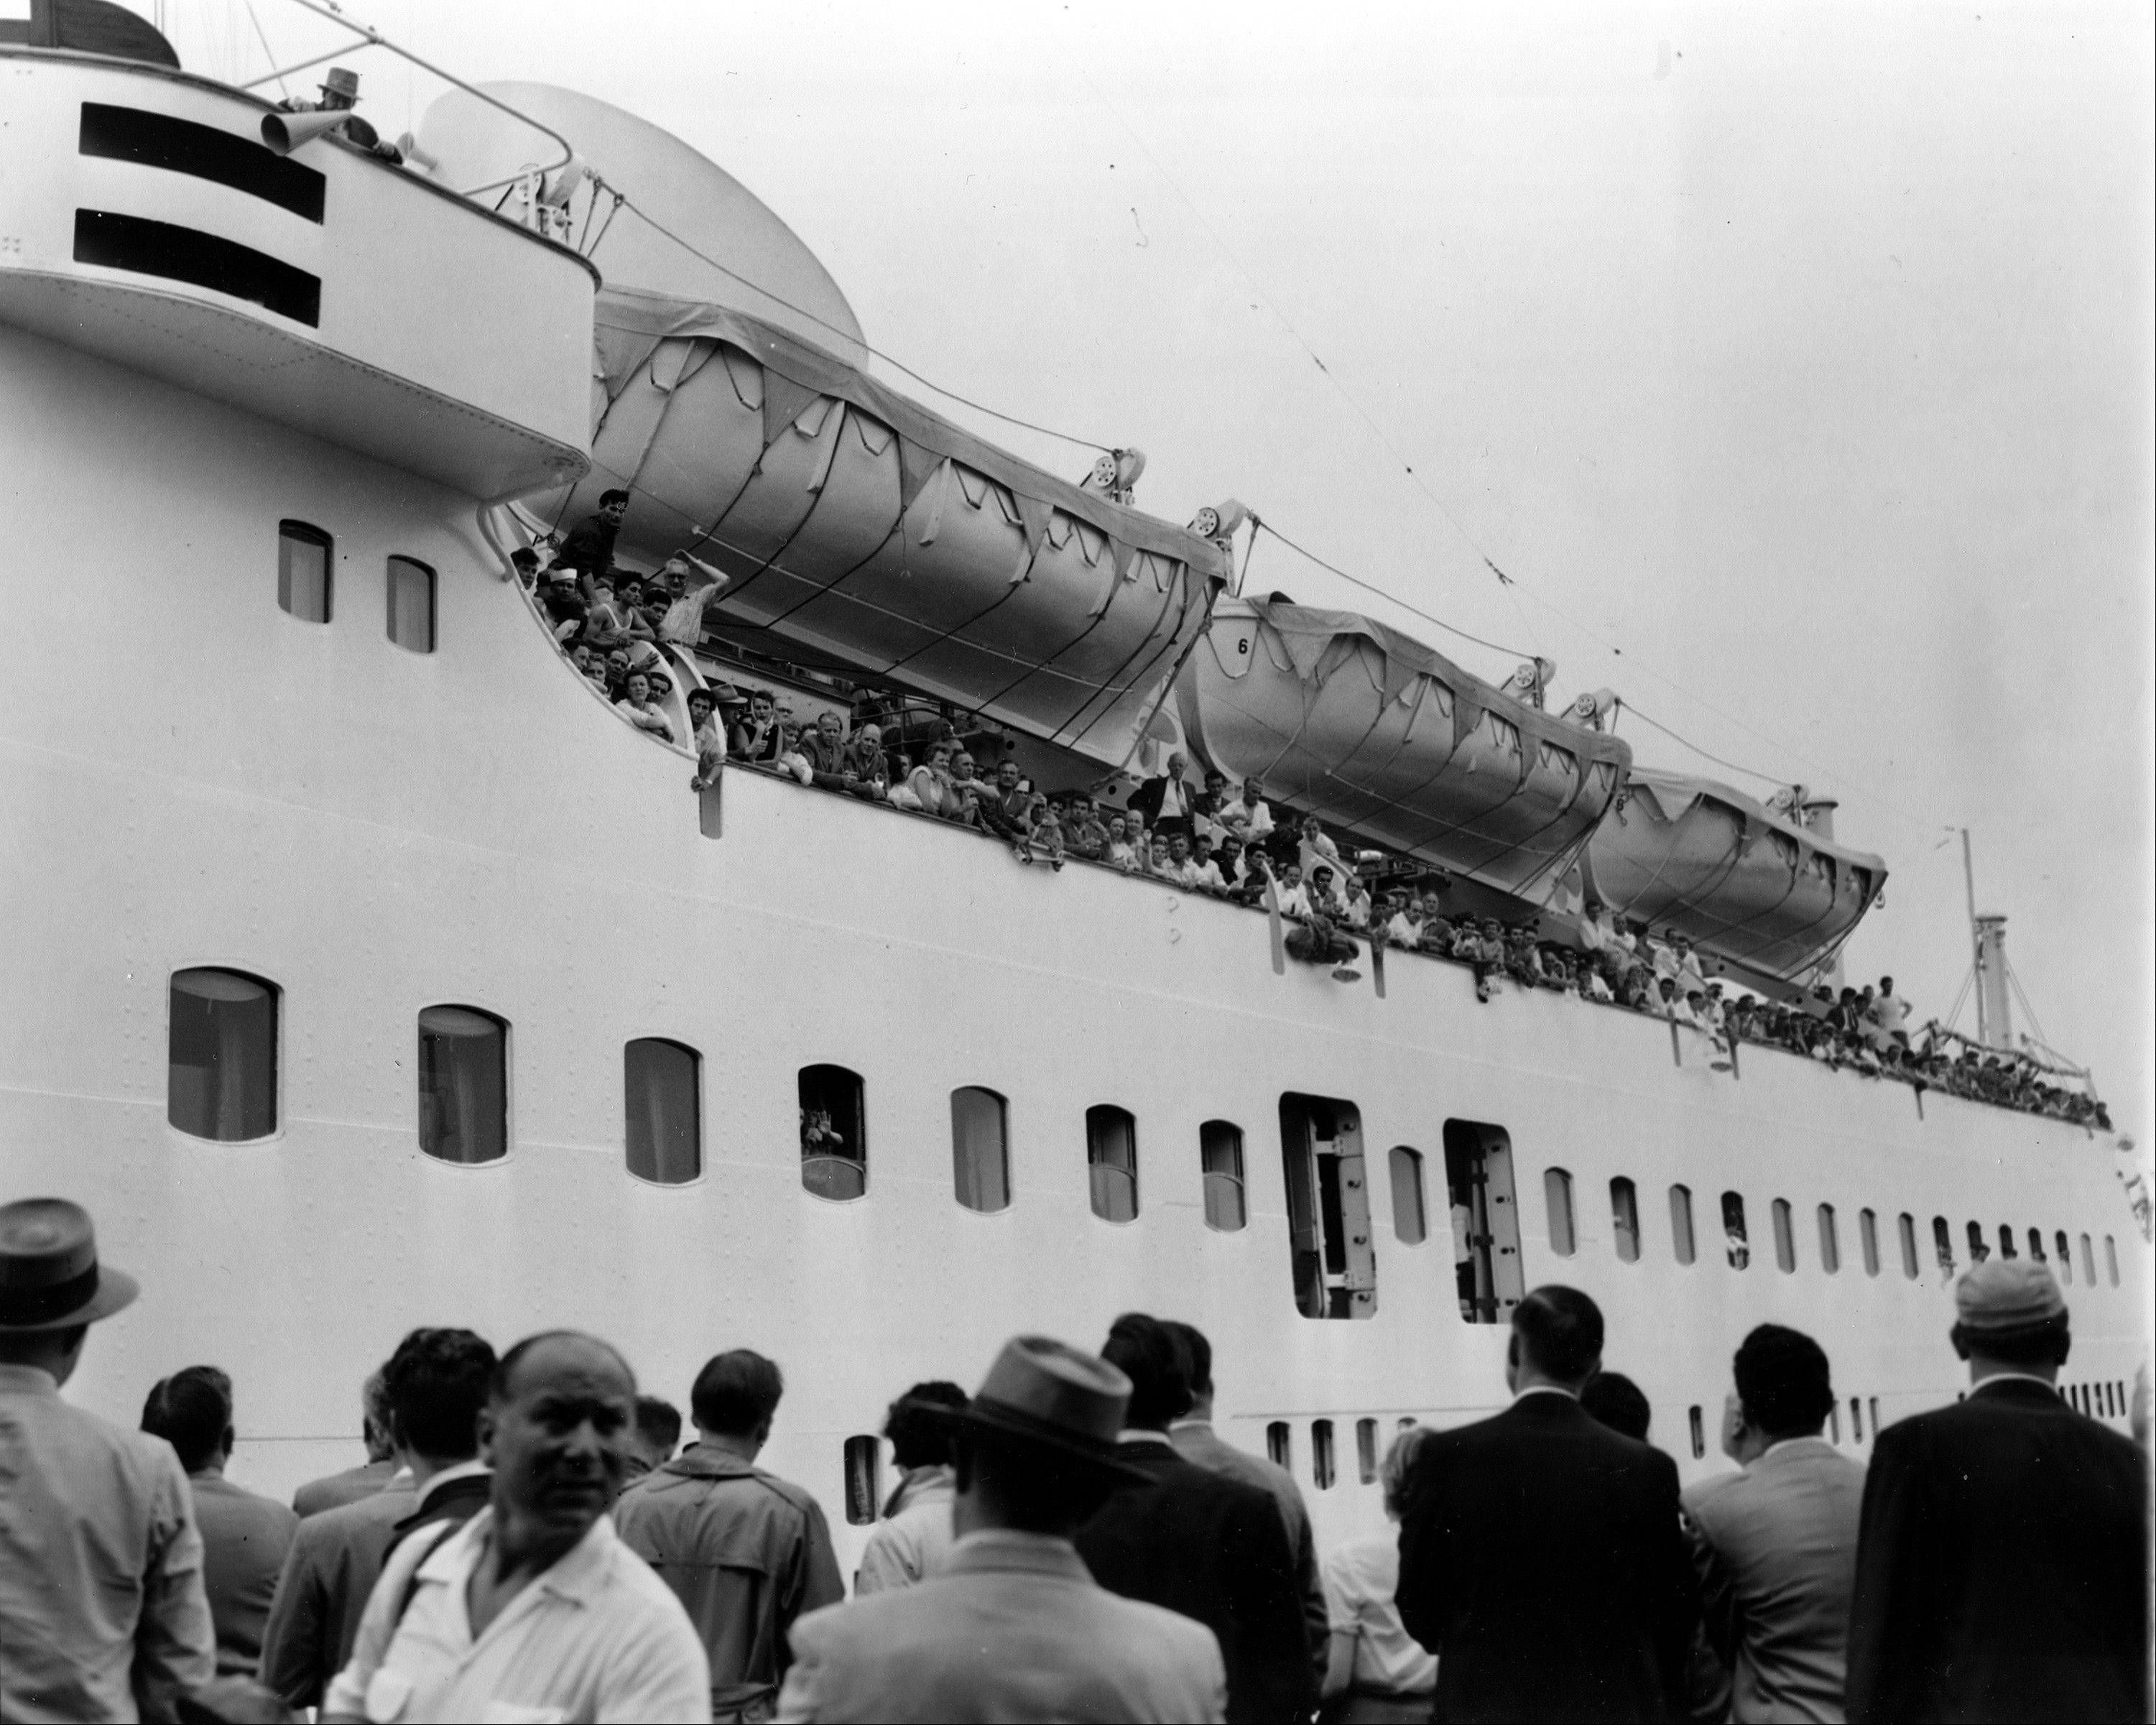 Surviving passengers of the Italian luxury liner Andrea Doria line the rail of the Swedish-American liner Stockholm as she pulls into North River Pier in New York, July 27, 1956. The Stockholm suffered a smashed bow after colliding with the Andrea Doria July 25.